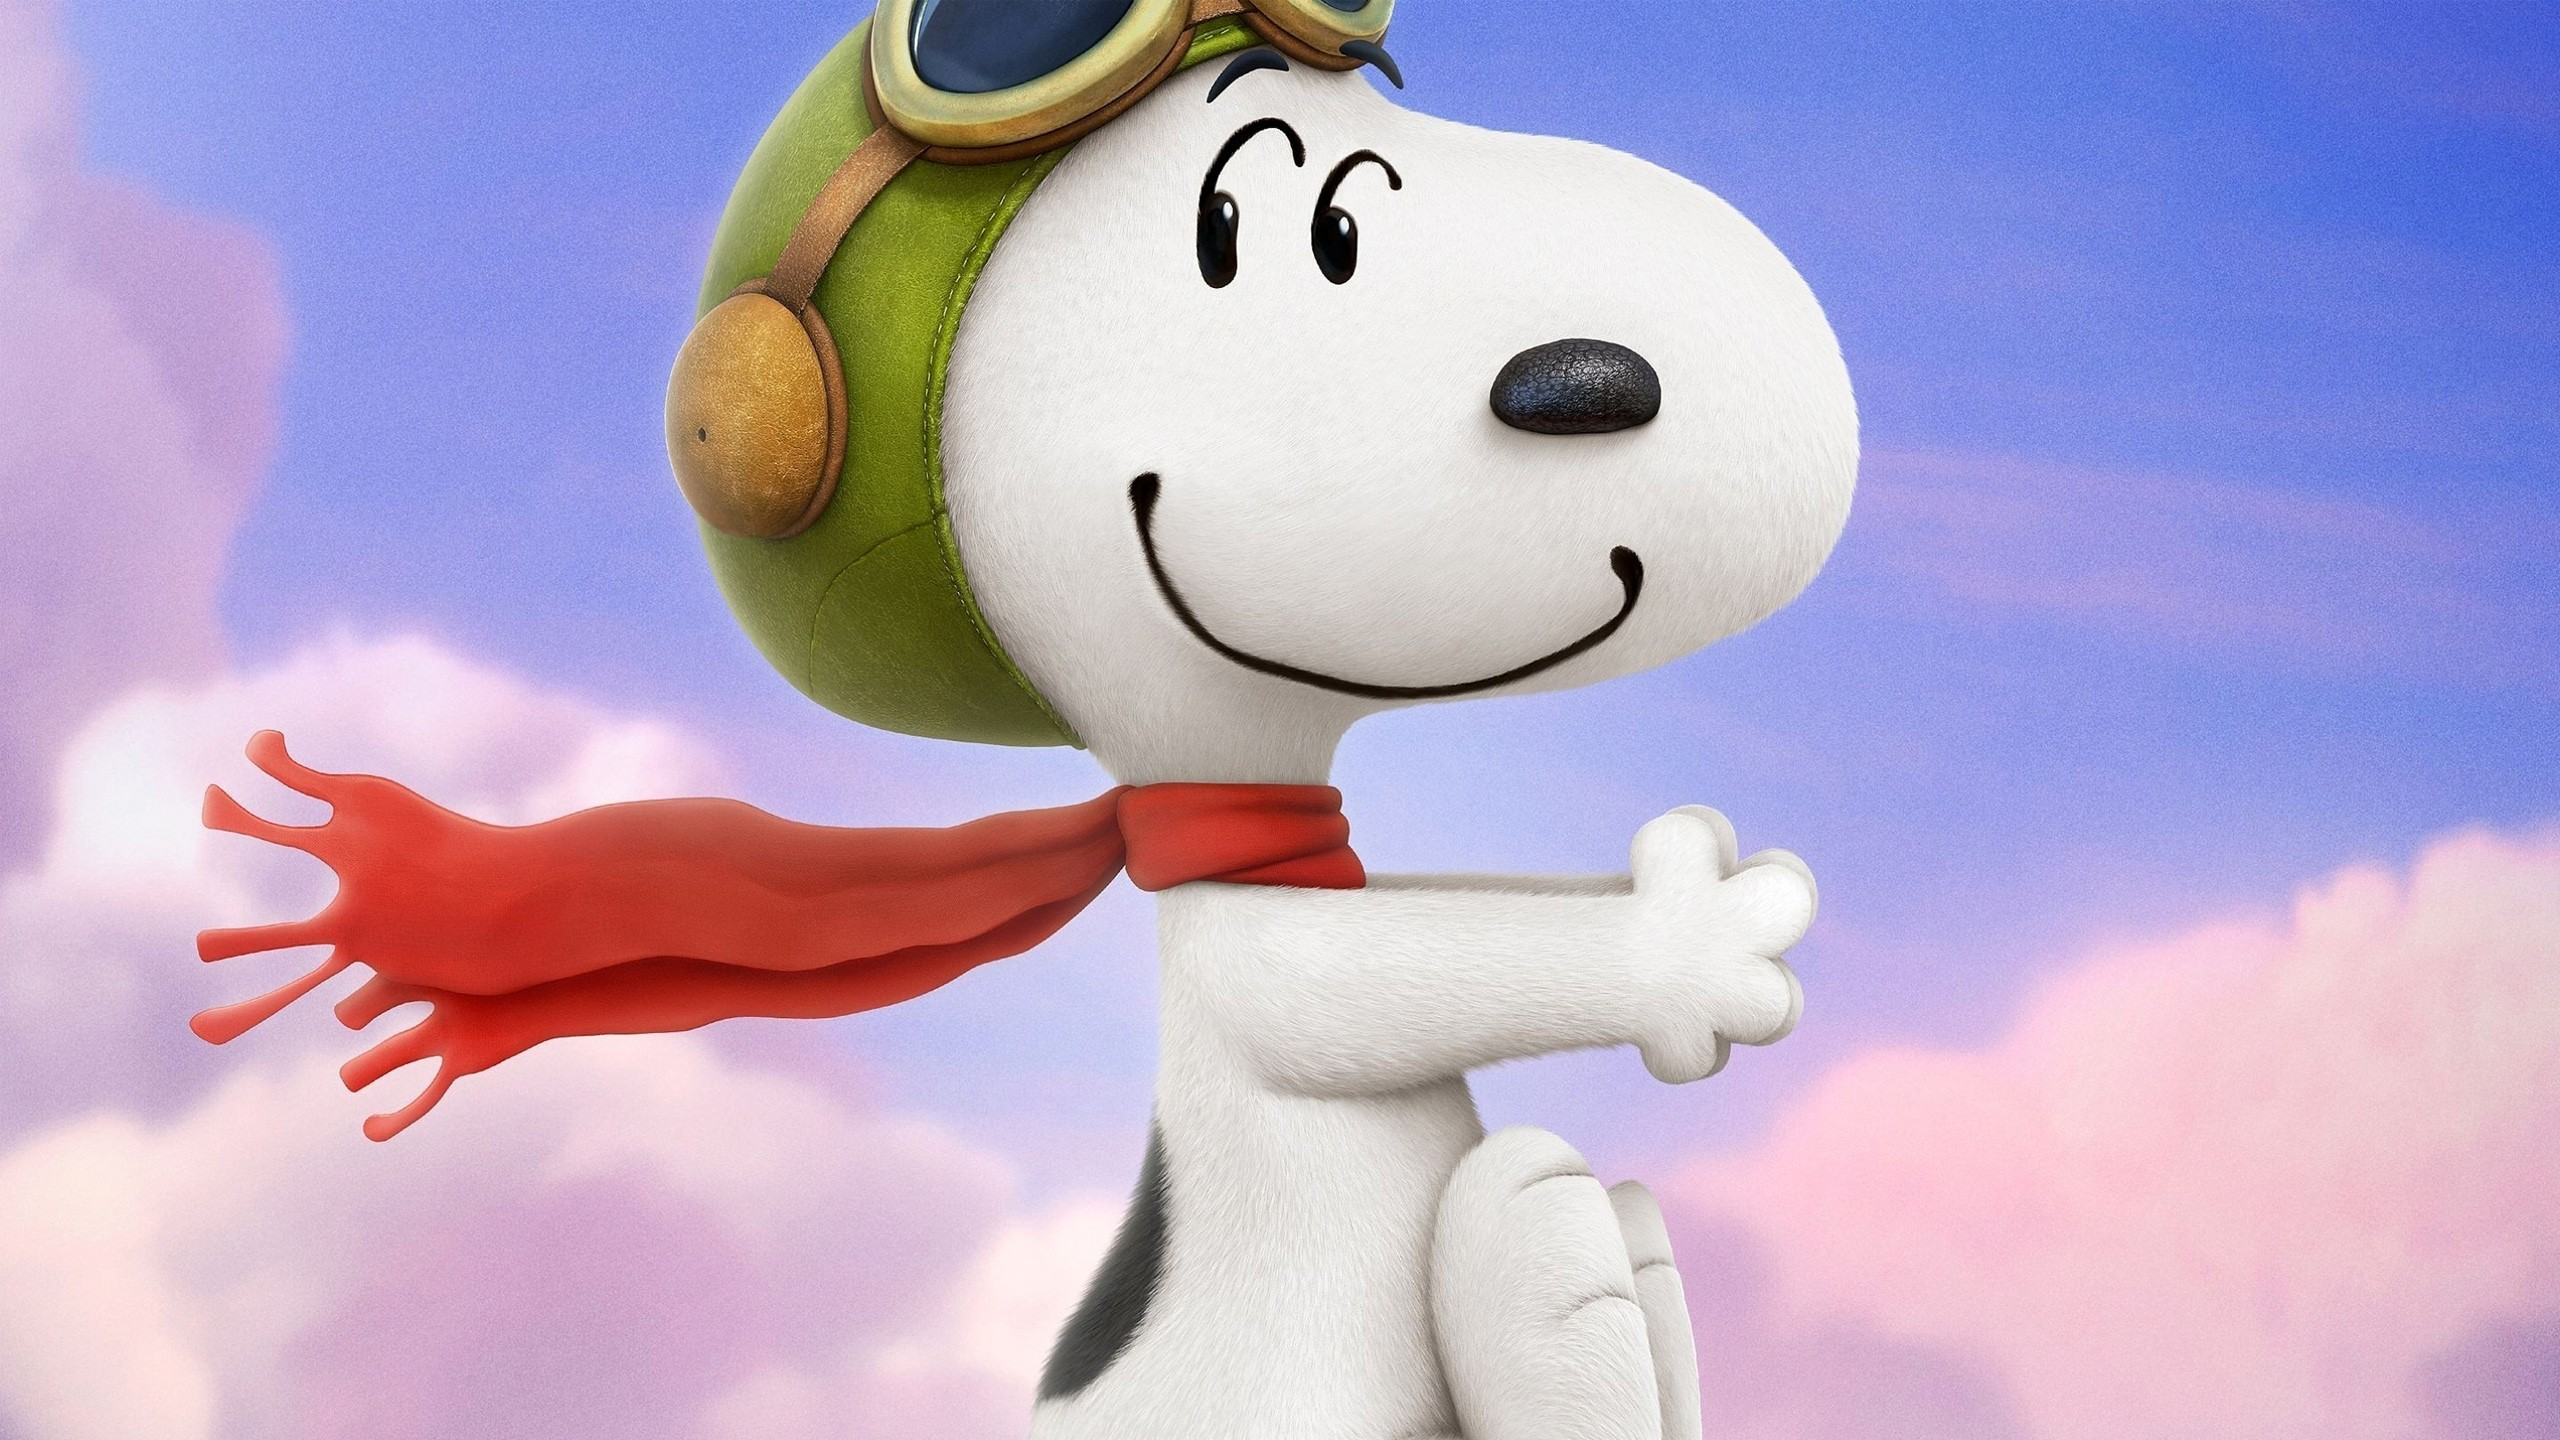 Res: 2560x1440, The Peanuts Snoopy 3D HD Wallpaper Download Wallpapers. Â«Â«